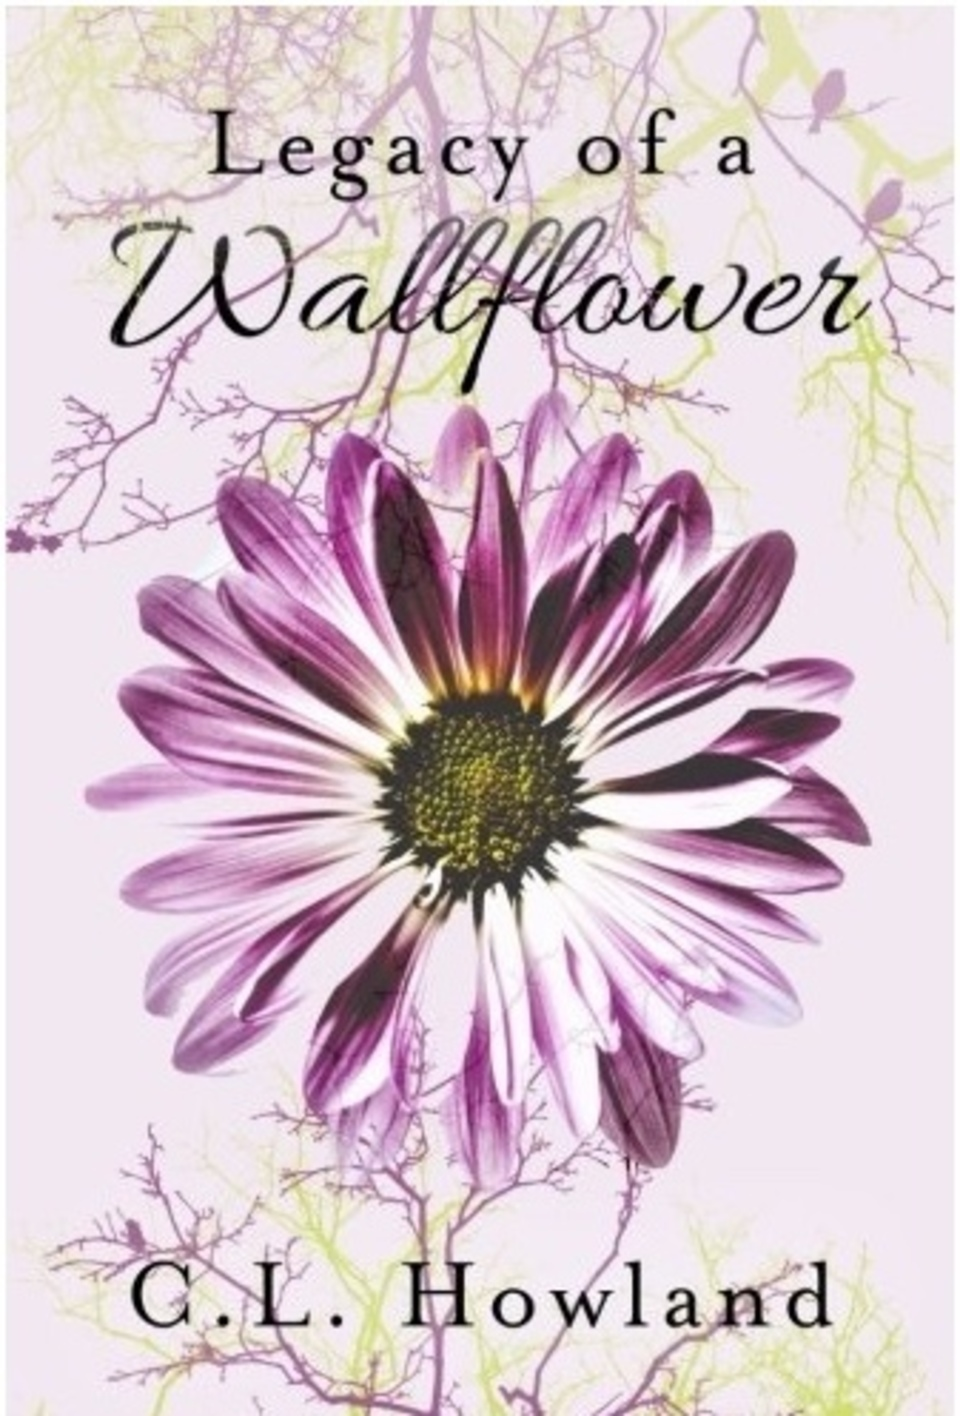 Legacy of a wallflower20171023 9904 q80ylv